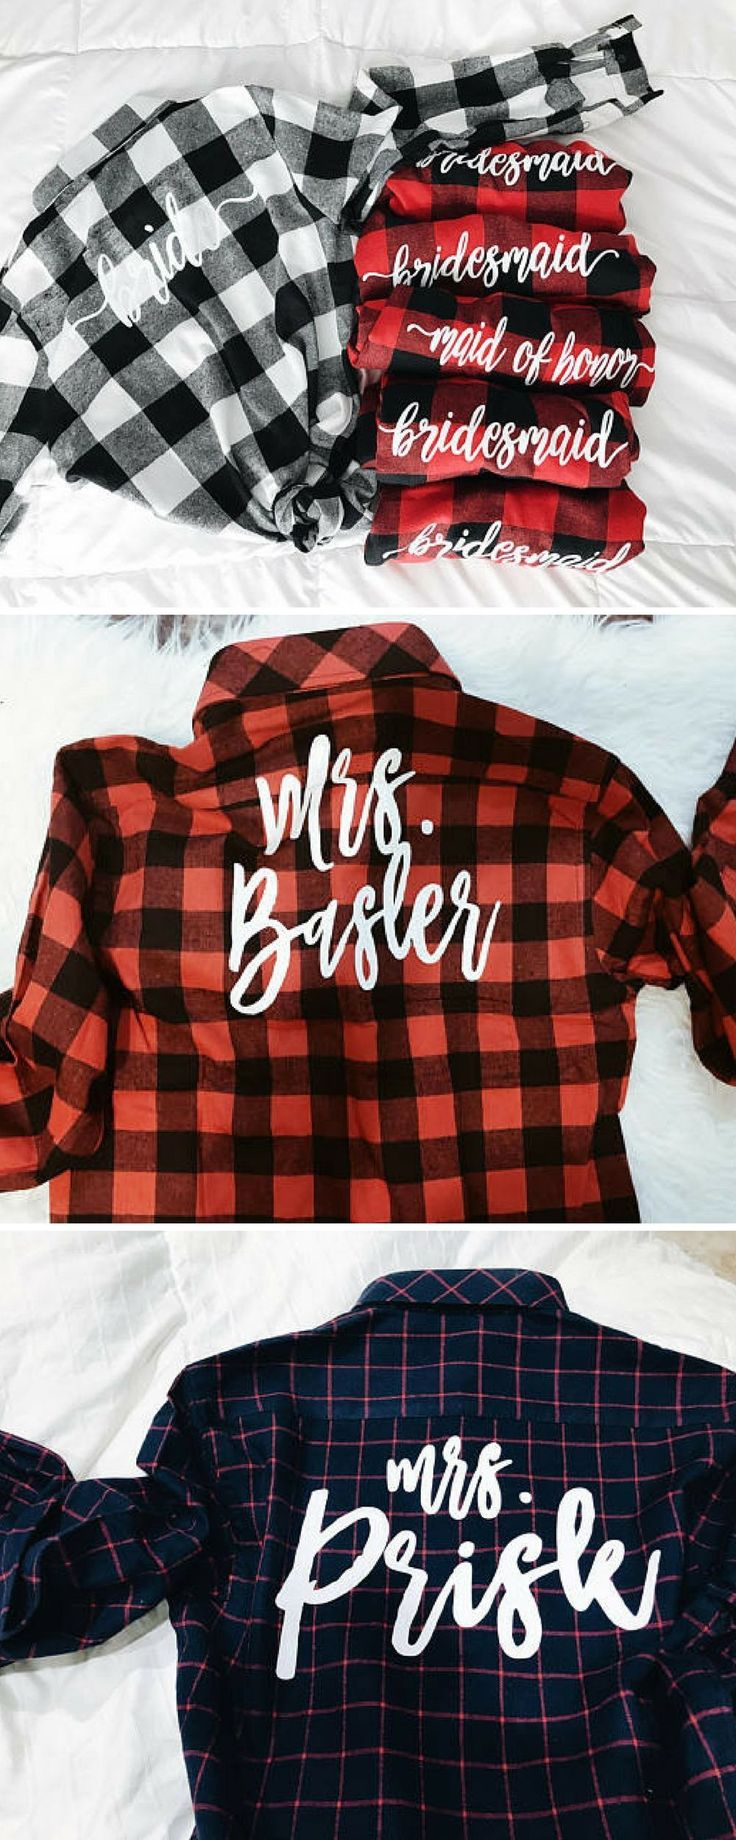 Mrs. Flannel |Bride Flannel | Bridesmaid Flannels | Maid of Honor Flannel #Affiliate #weddings #gifts #bridesmaids